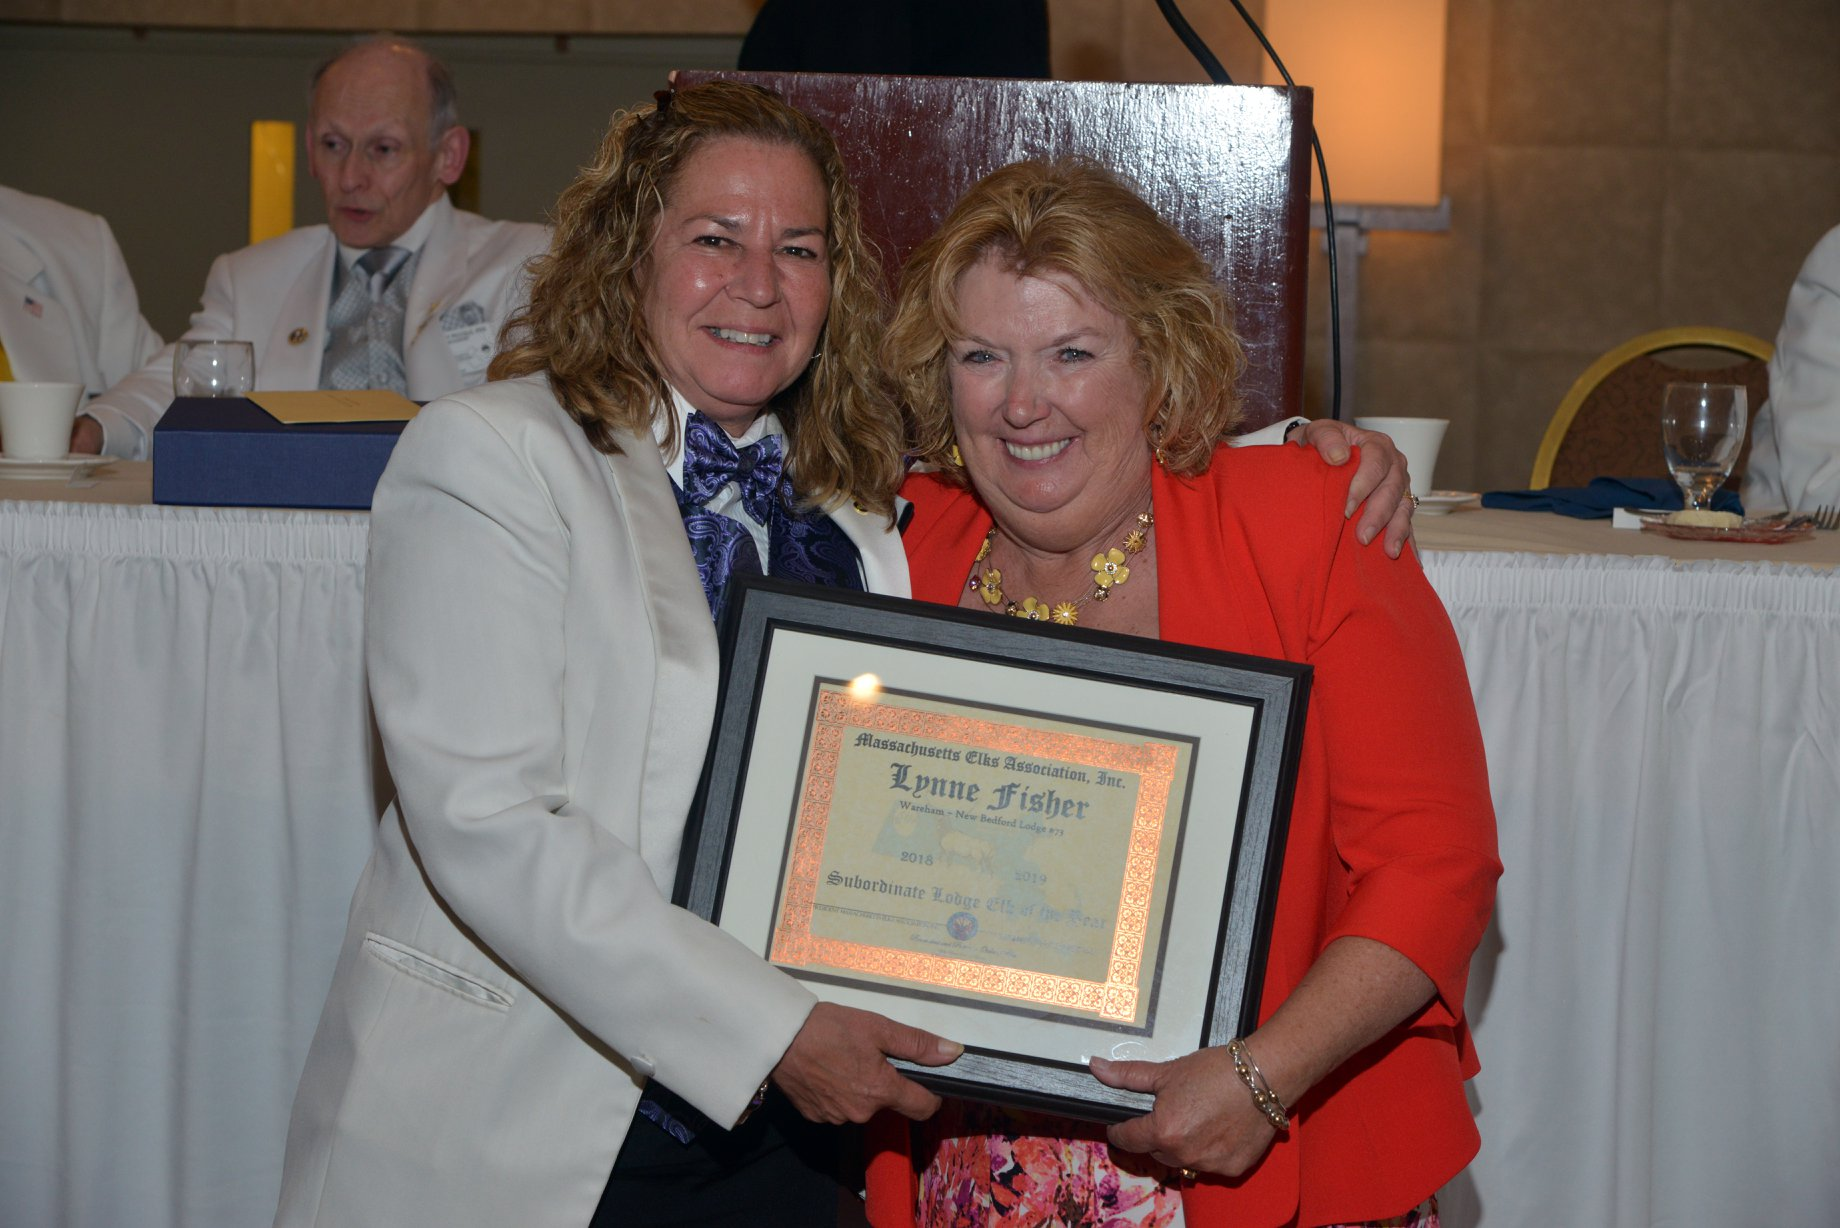 24 Lynne Fisher Elk of the Year